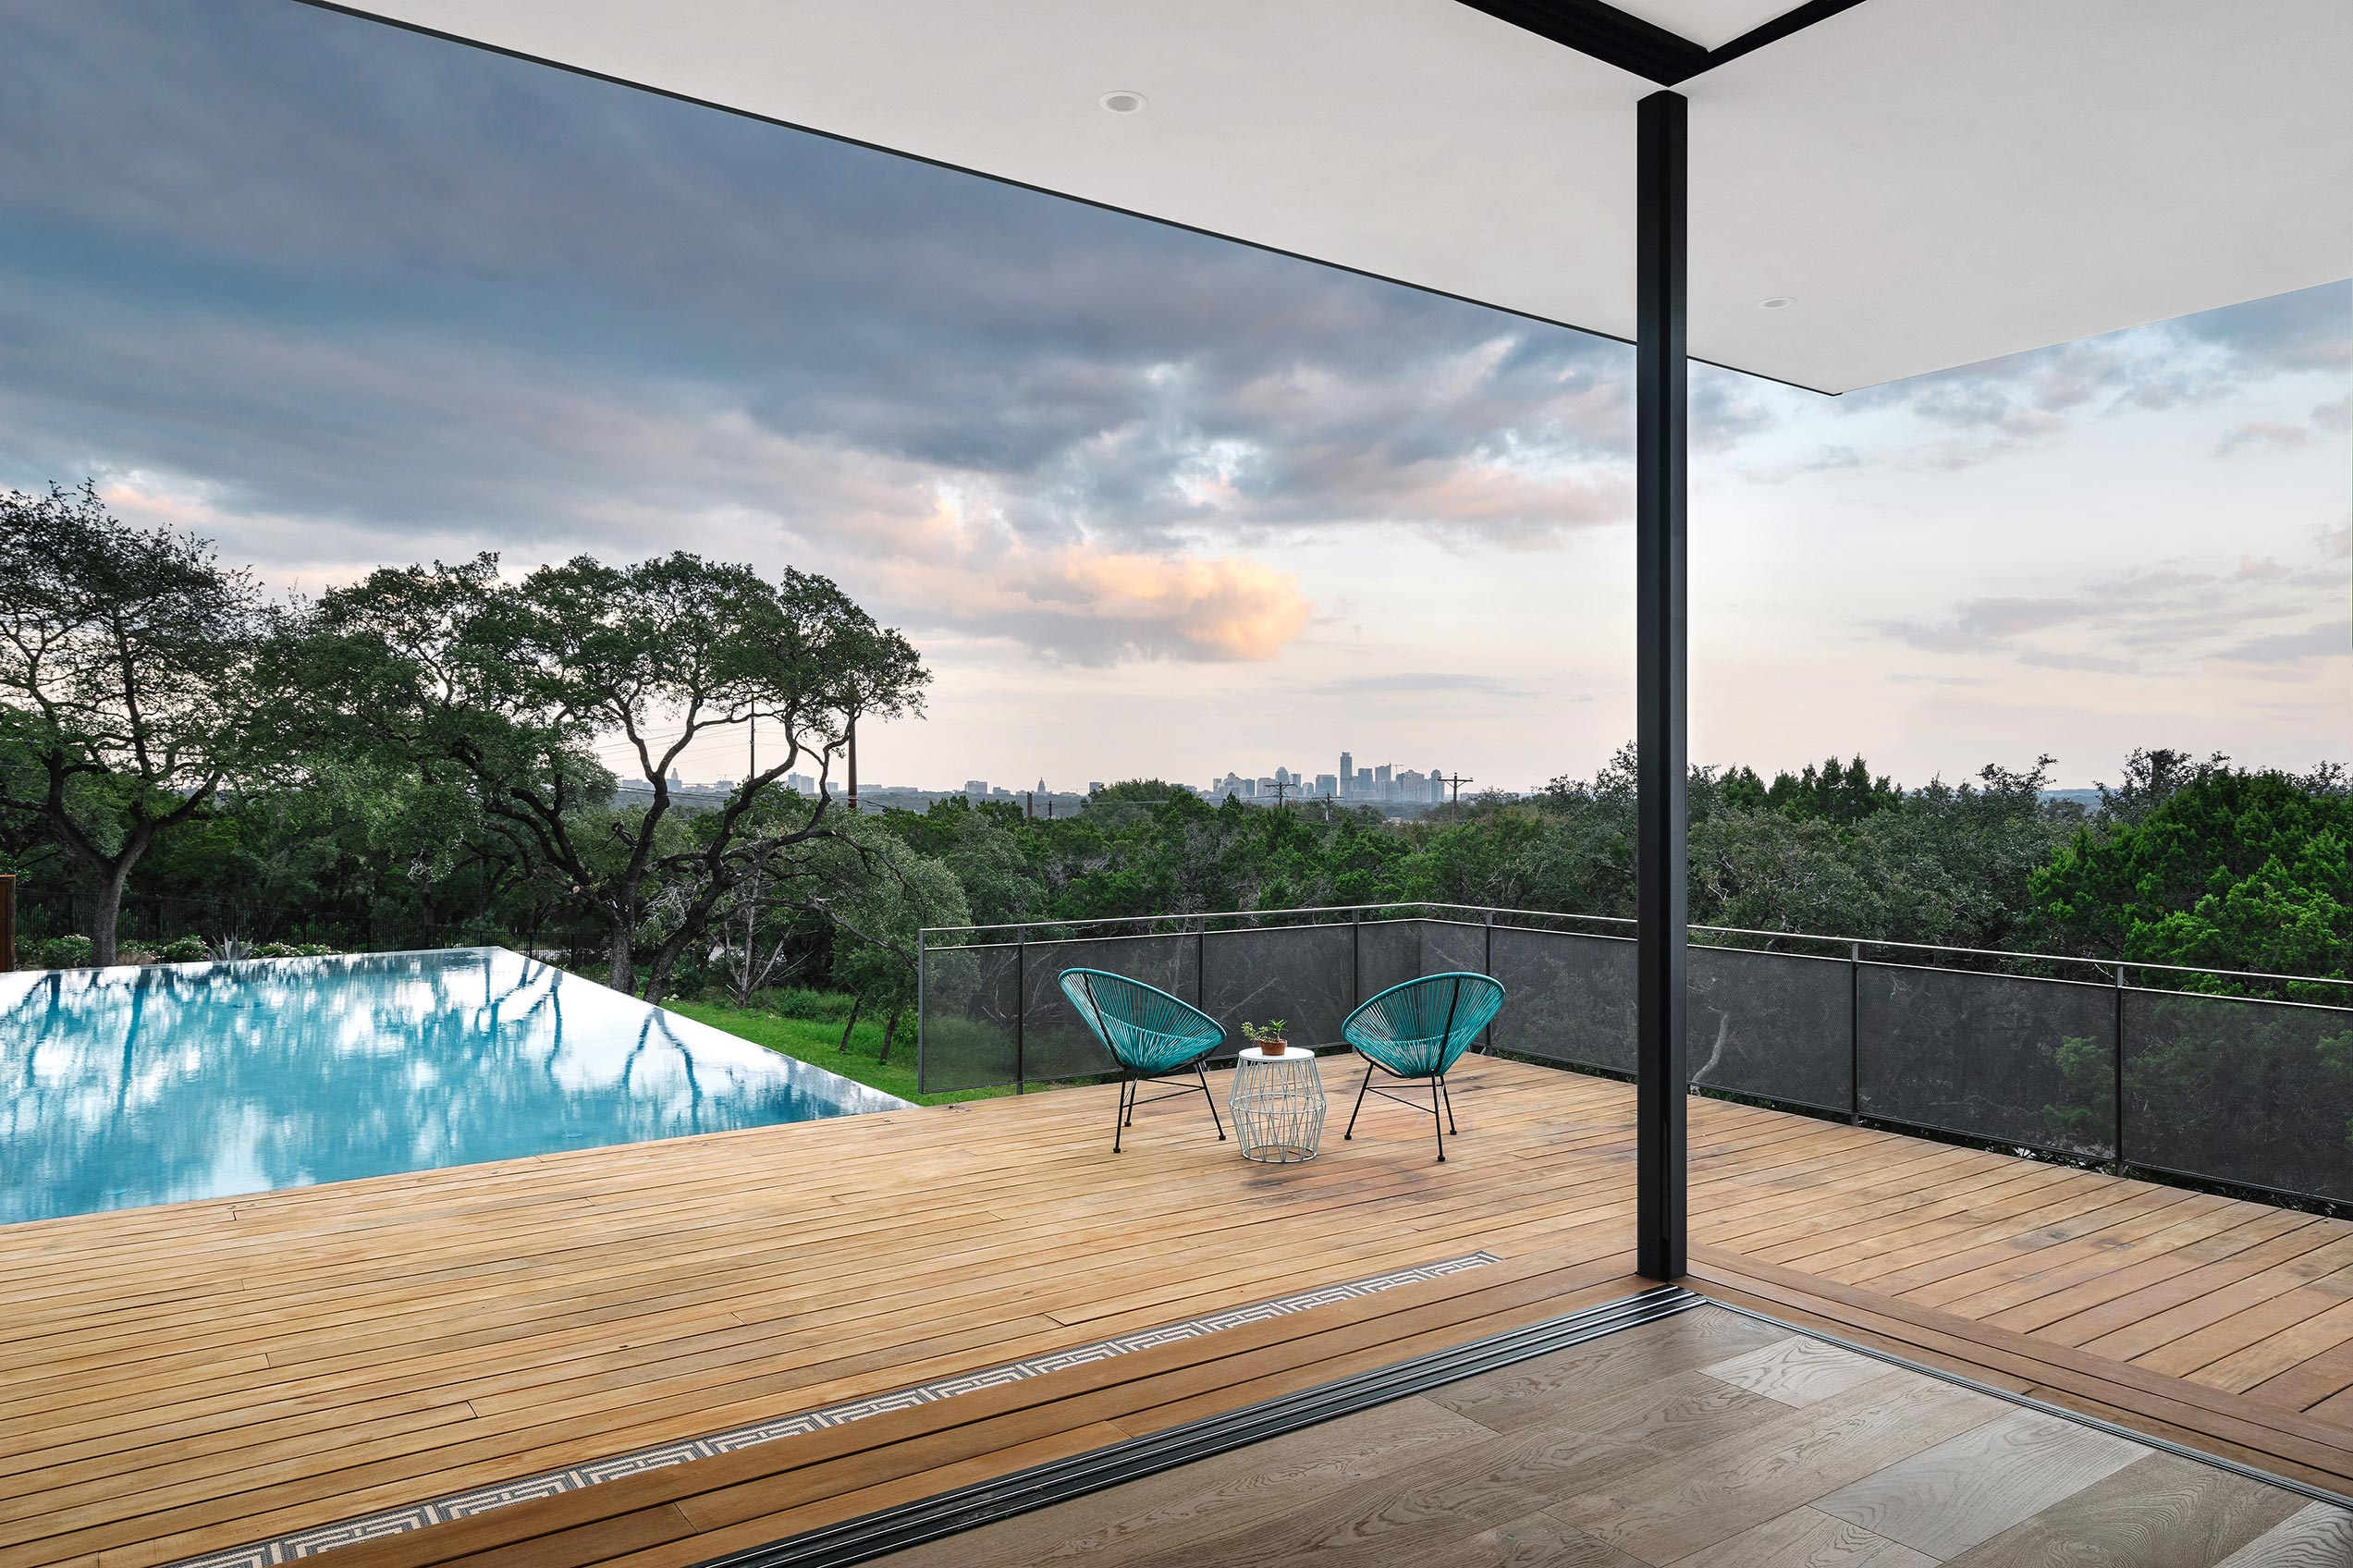 The Austin skyline is visible from virtually anywhere in the house.